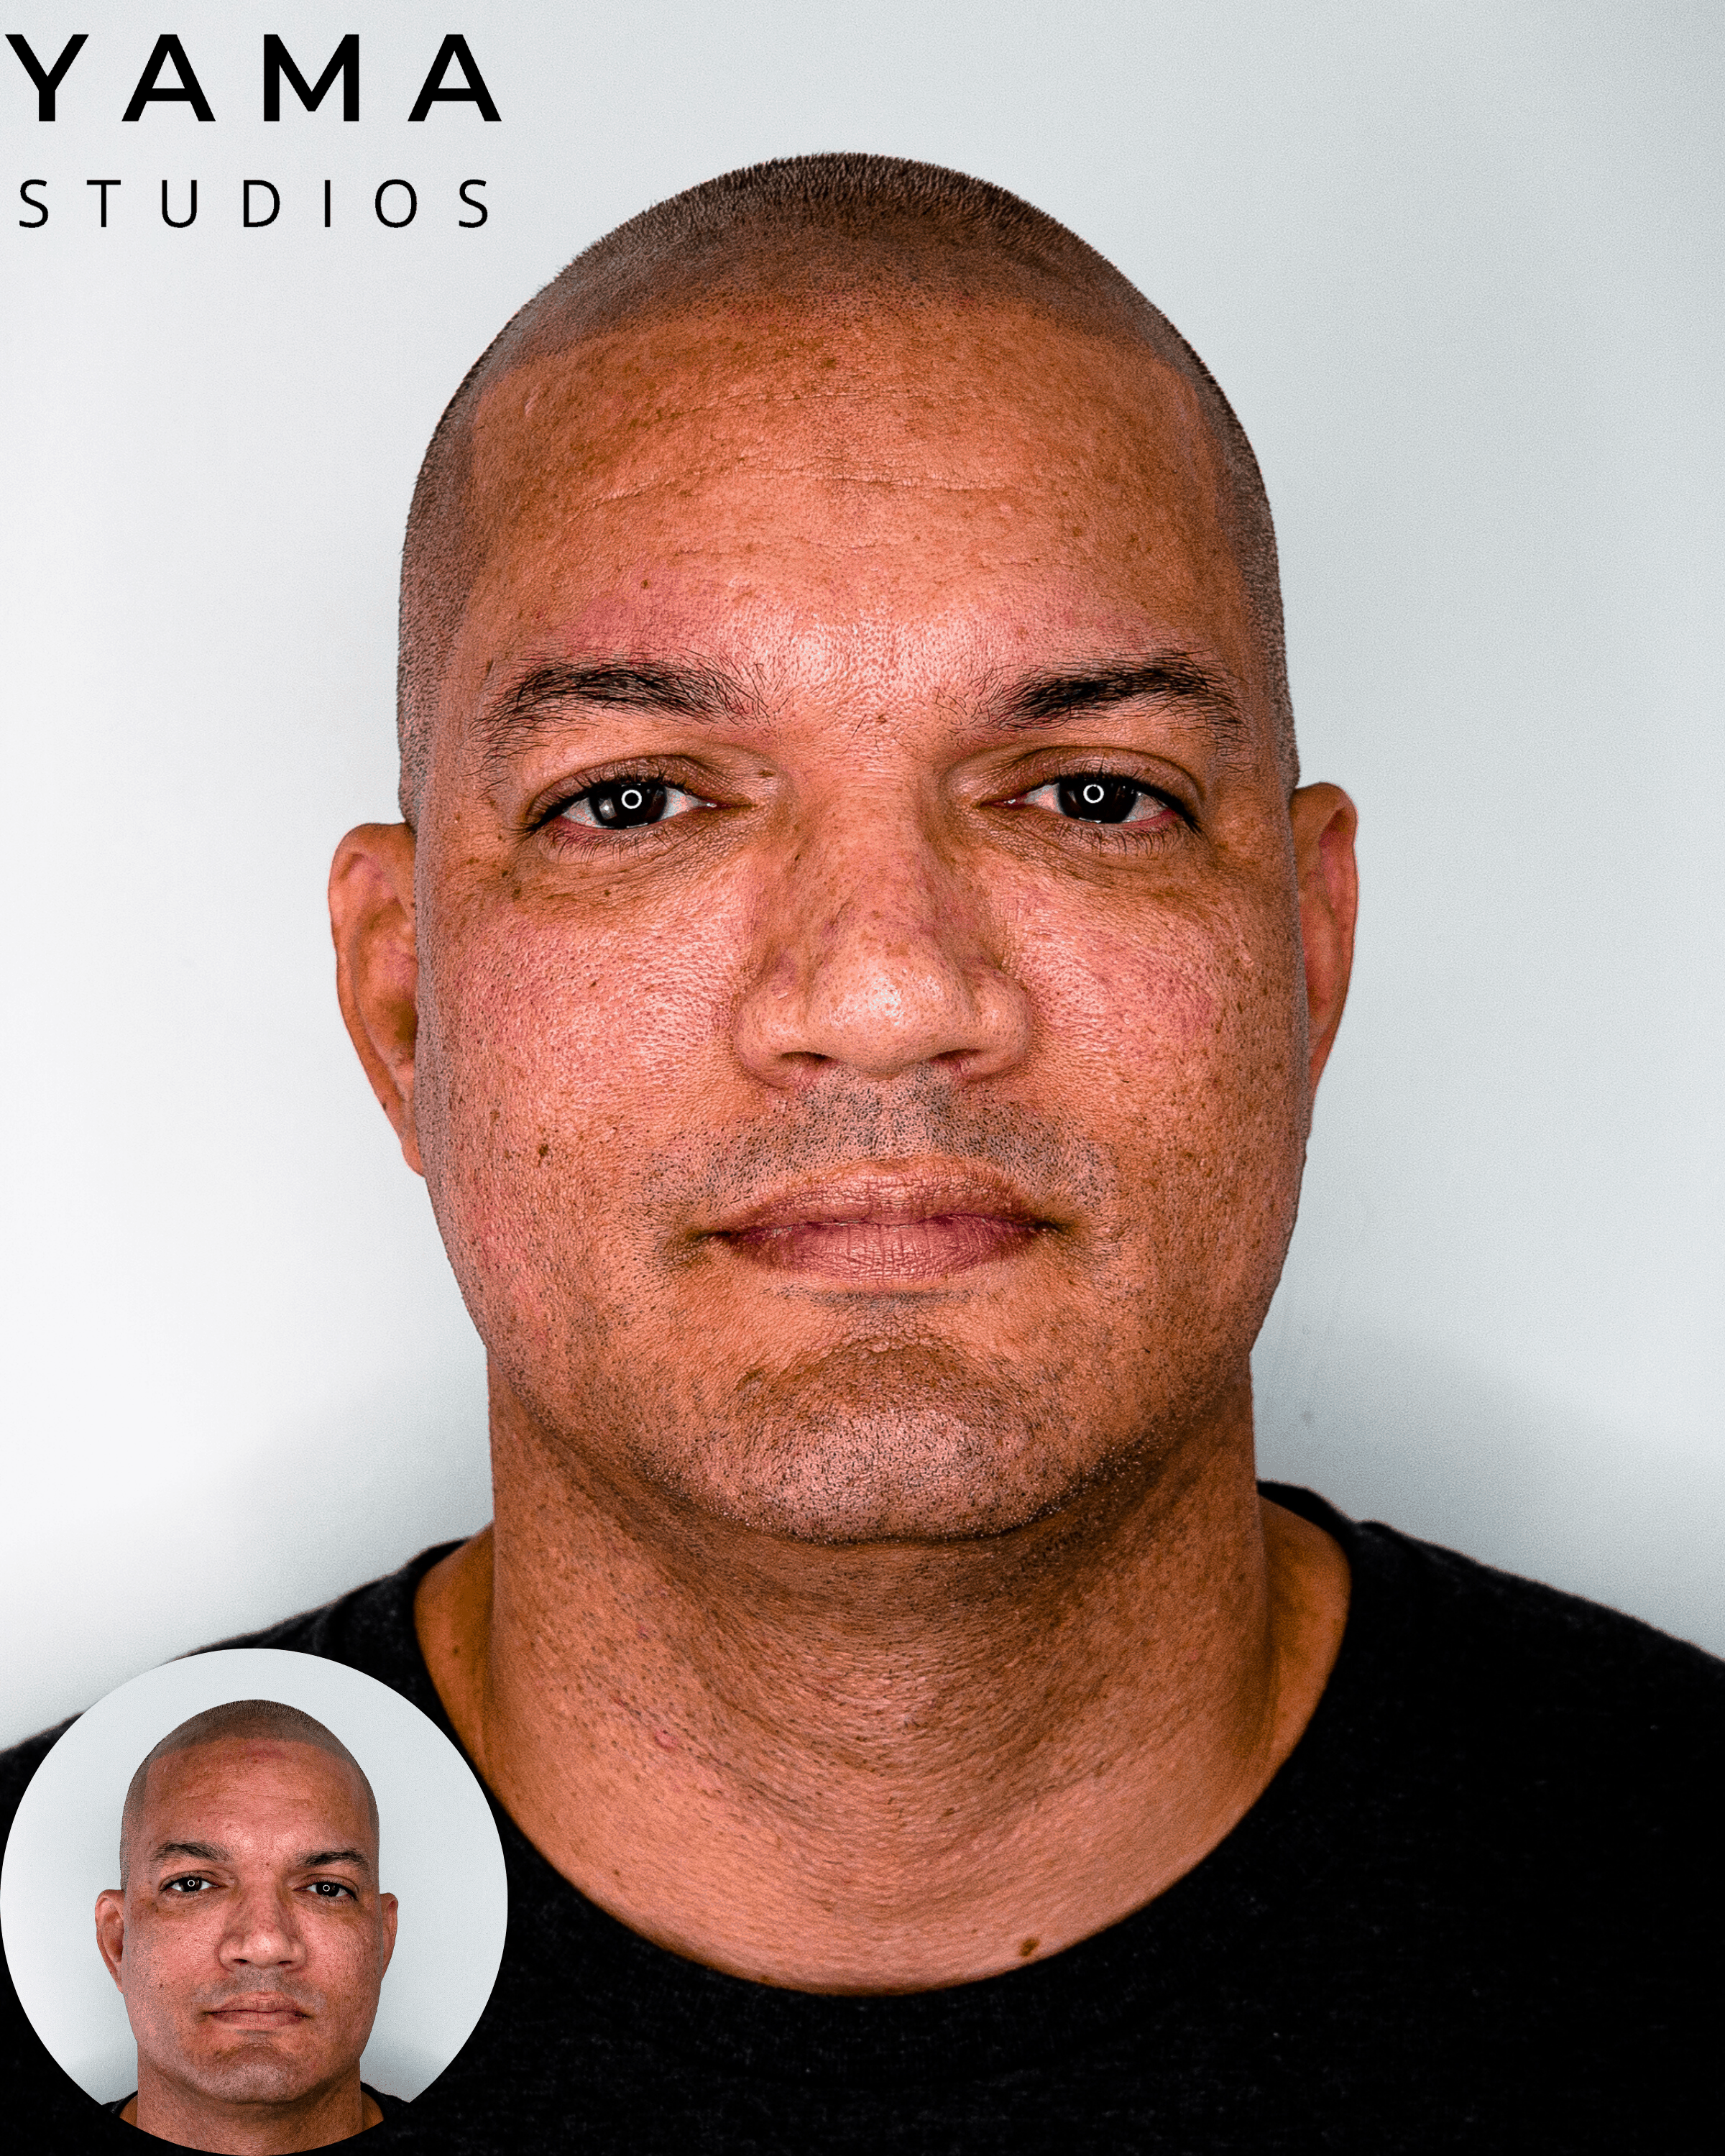 Scalp micropigmentation hair tattoo old SMP cover up at YAMA Studios on Oahu in Honolulu, Hawaii.